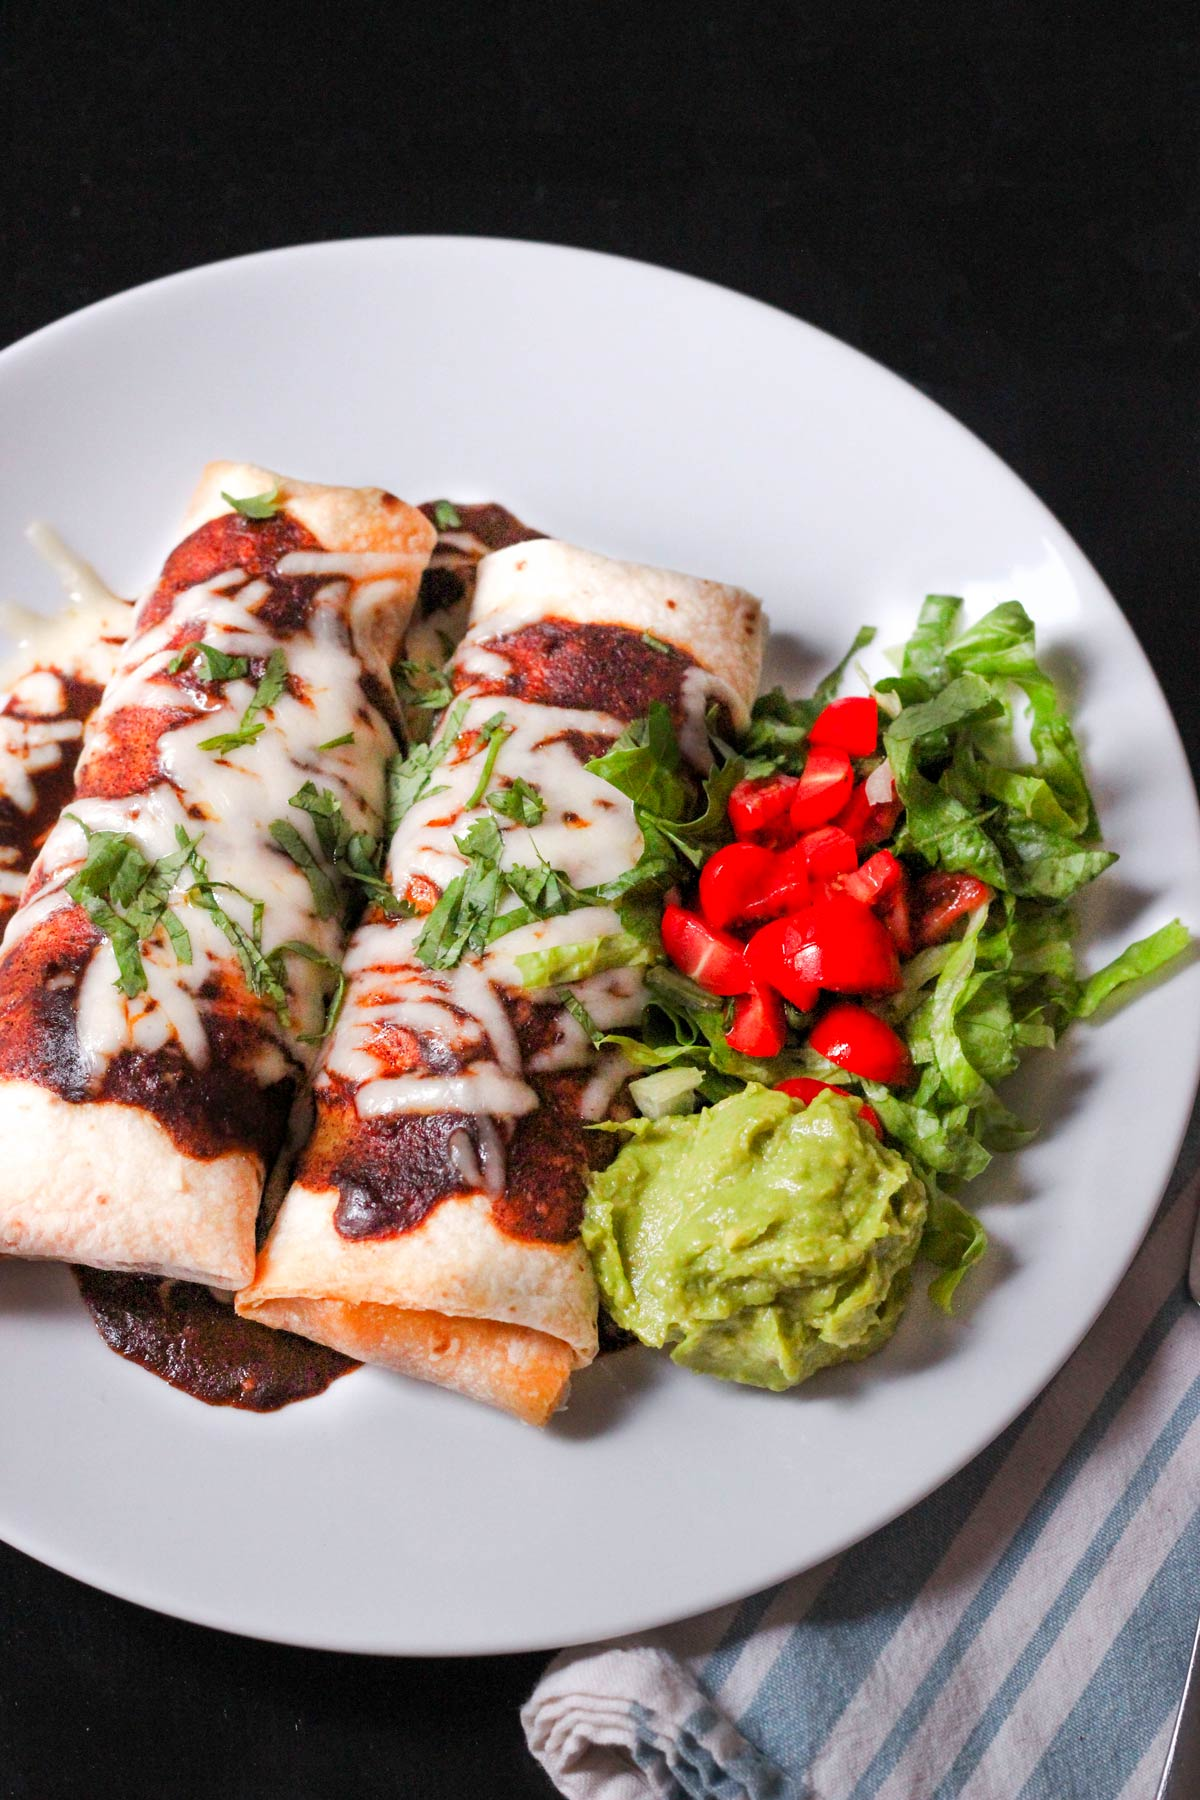 two bean and beef burritos on a plate topped with red sauce and melted cheese with guacamole and salad on the side.